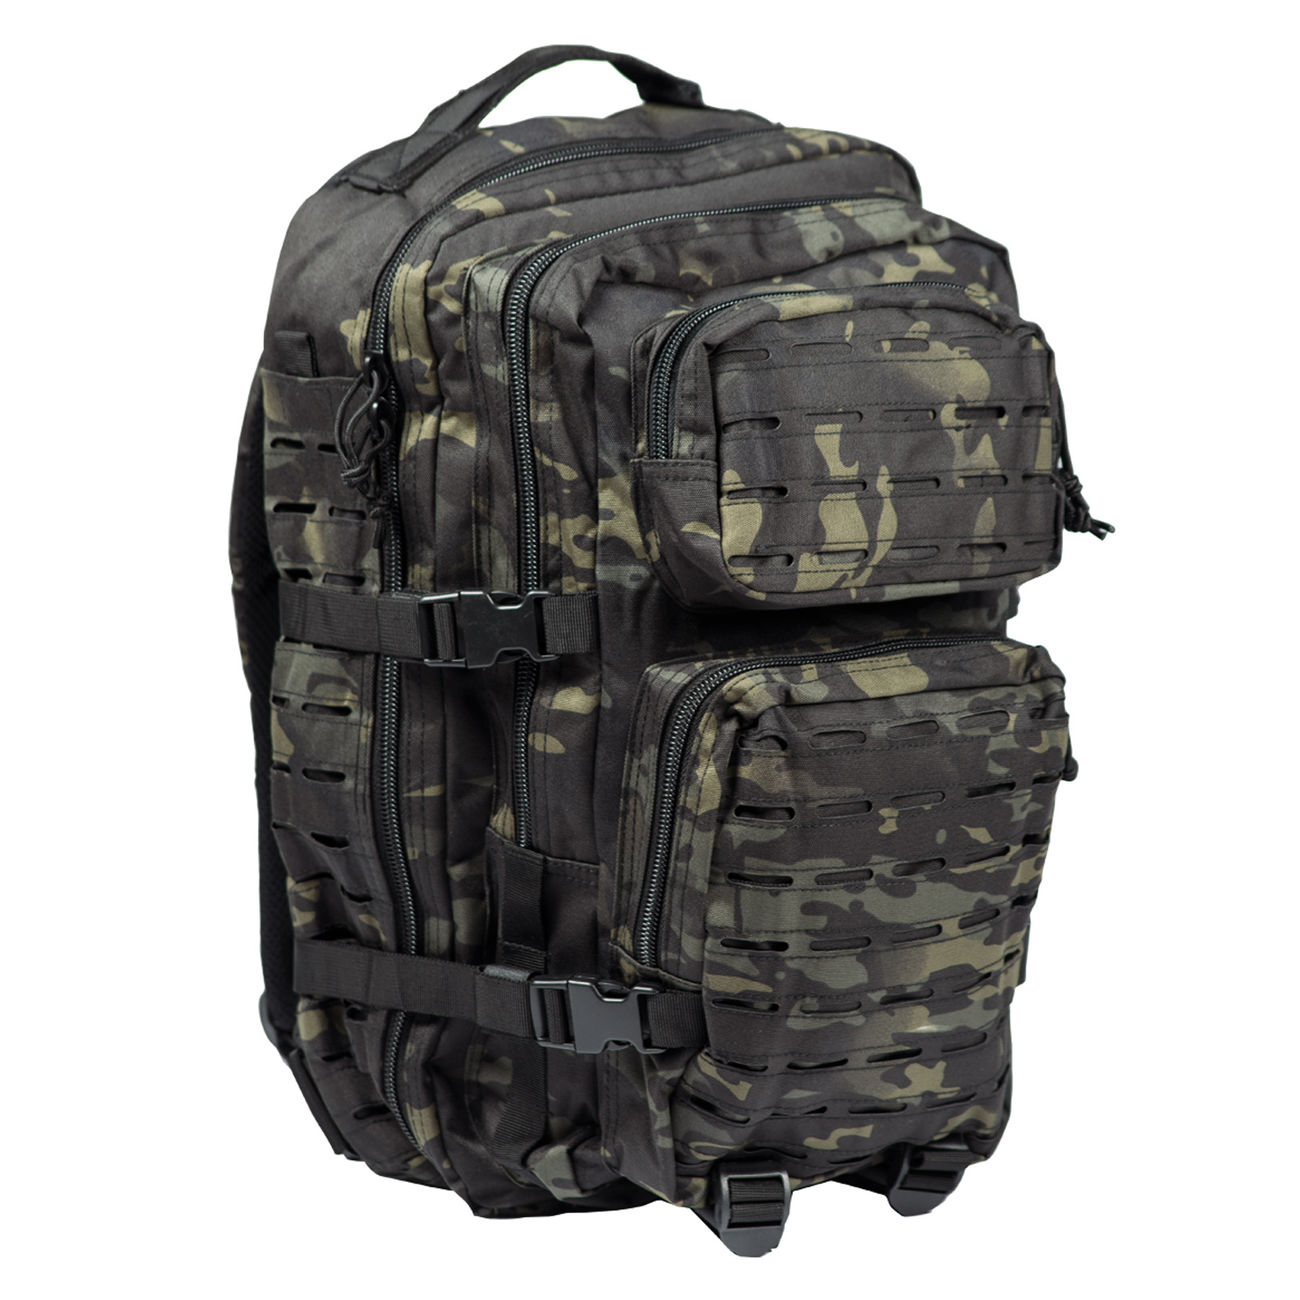 Mil-Tec Rucksack US Assault Pack Laser Cut large 36L multitarn black 0